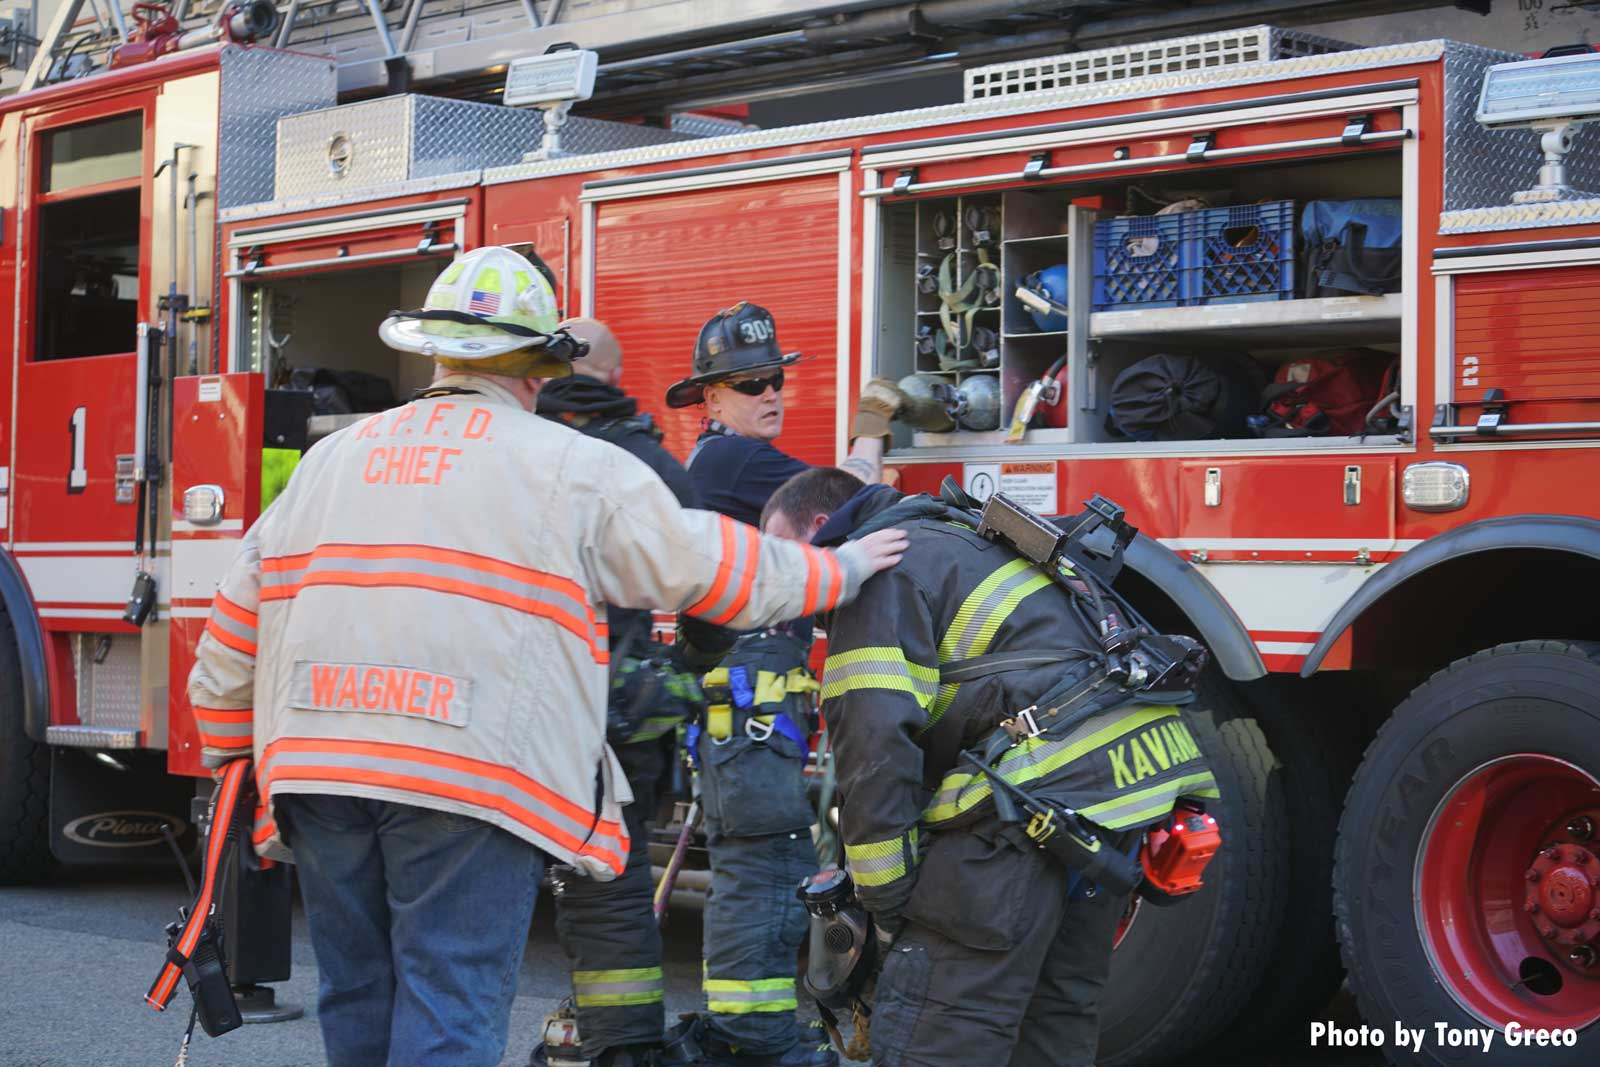 A firefighter hunched over on the fireground surrounded by other firemen